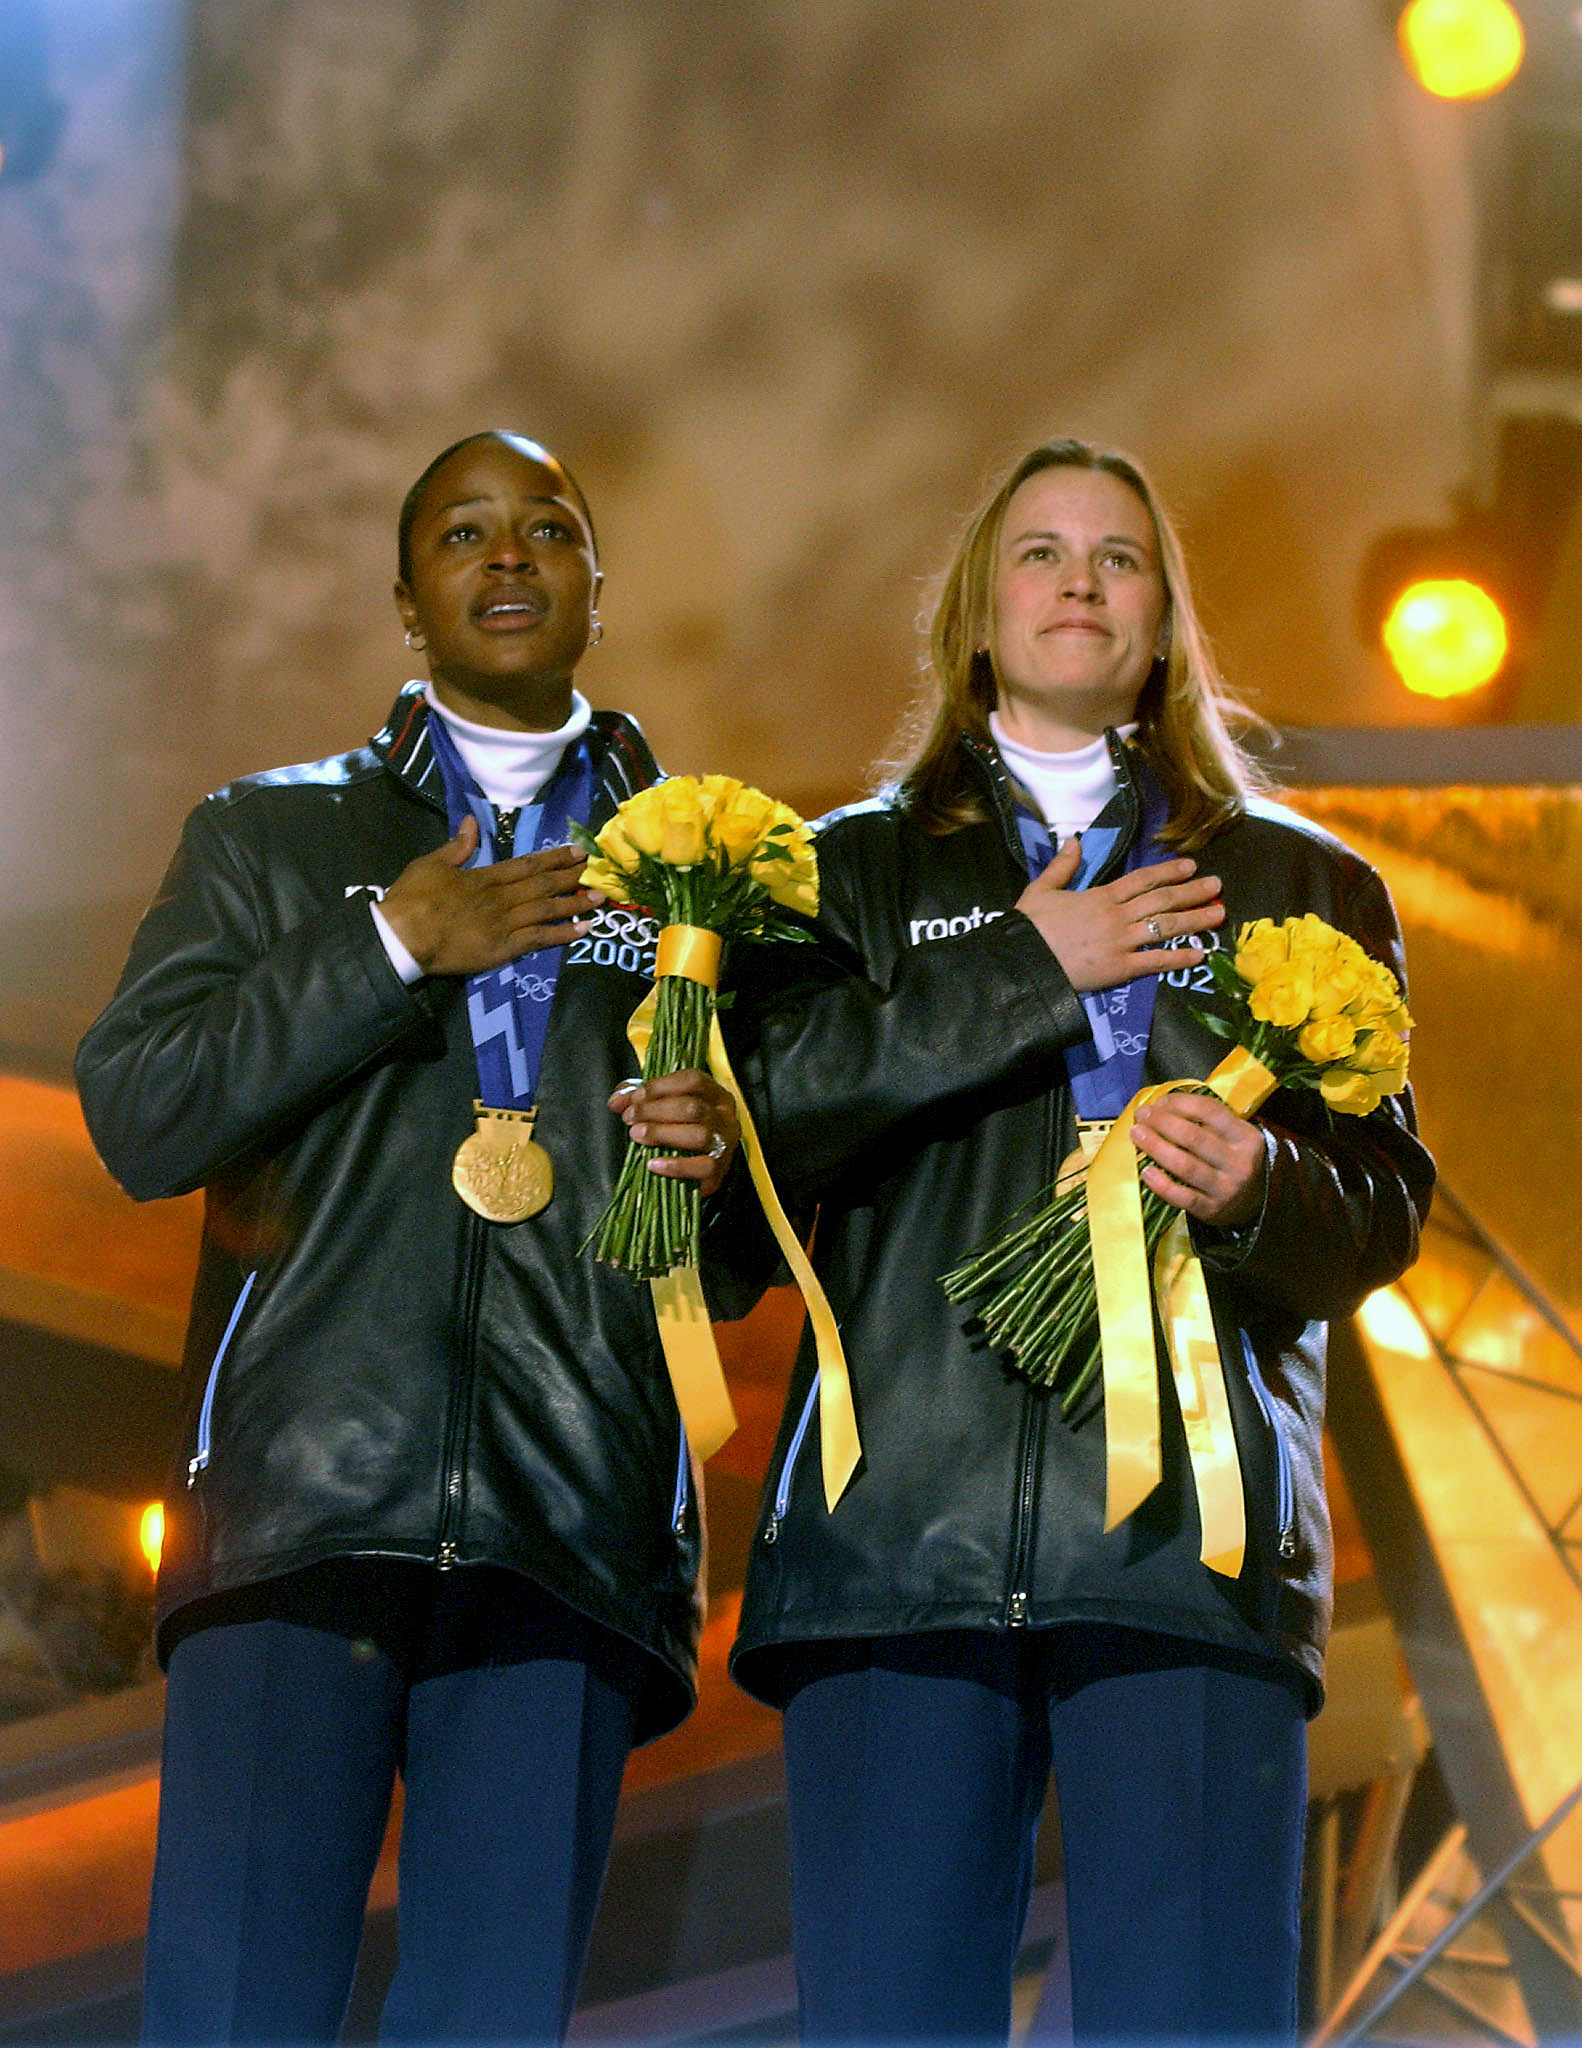 Flowers and Bakken with gold medals during the playing of the US National Anthem. Flowers becomes the first African American to win a gold in the Winter Olympics.